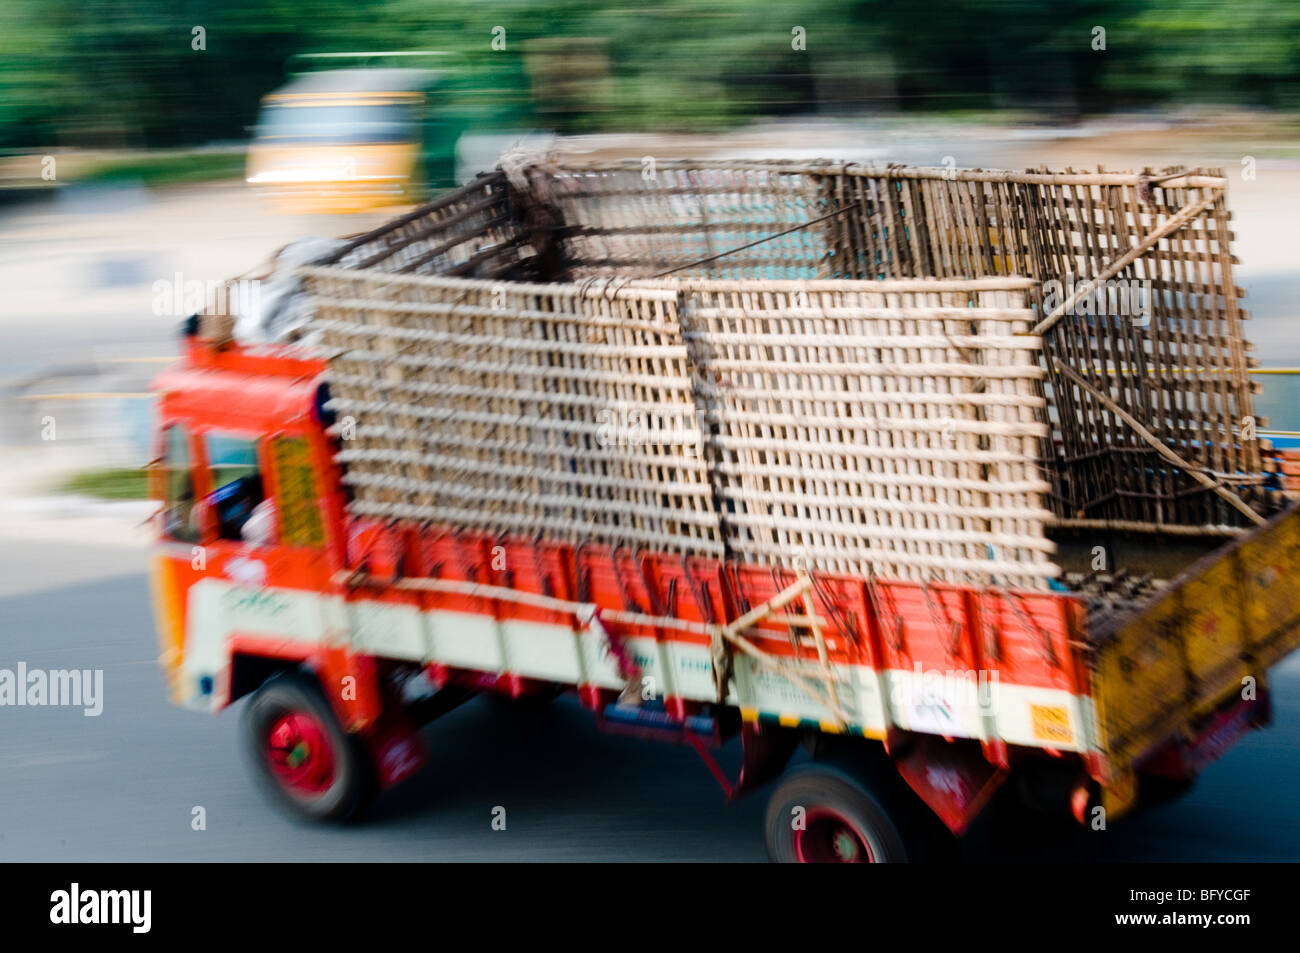 Truck, motion blur, India - Stock Image